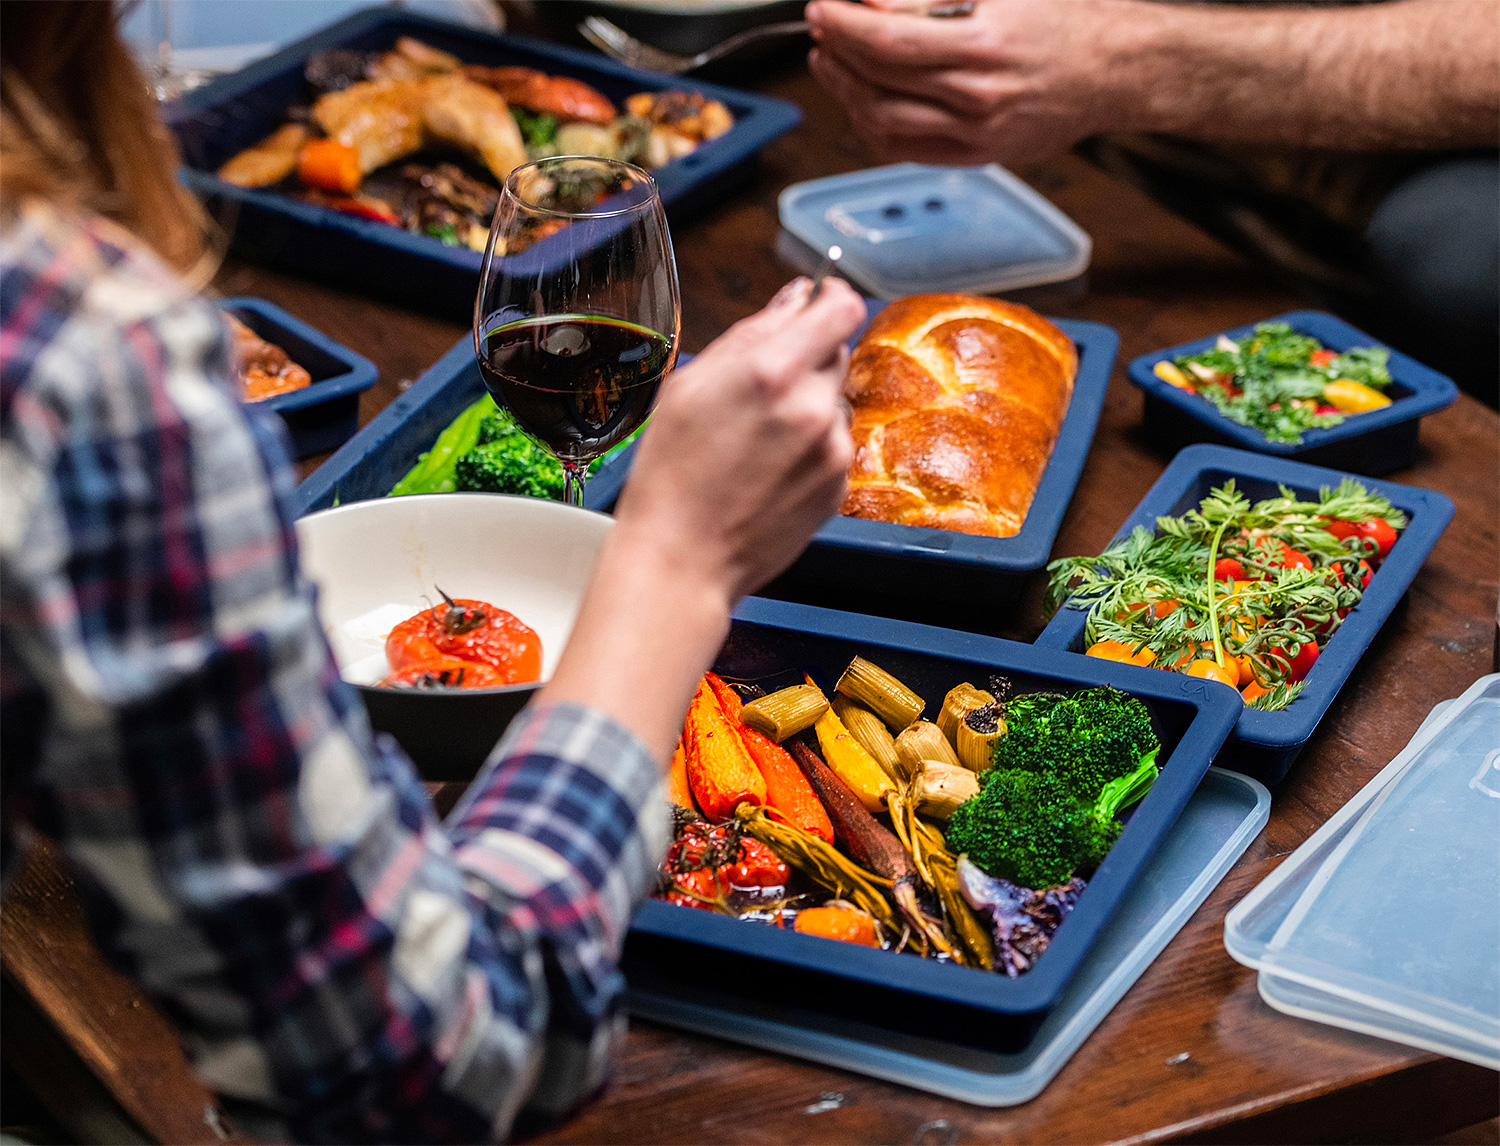 For More Cooking & Less Clean-up Try Omnipan at werd.com